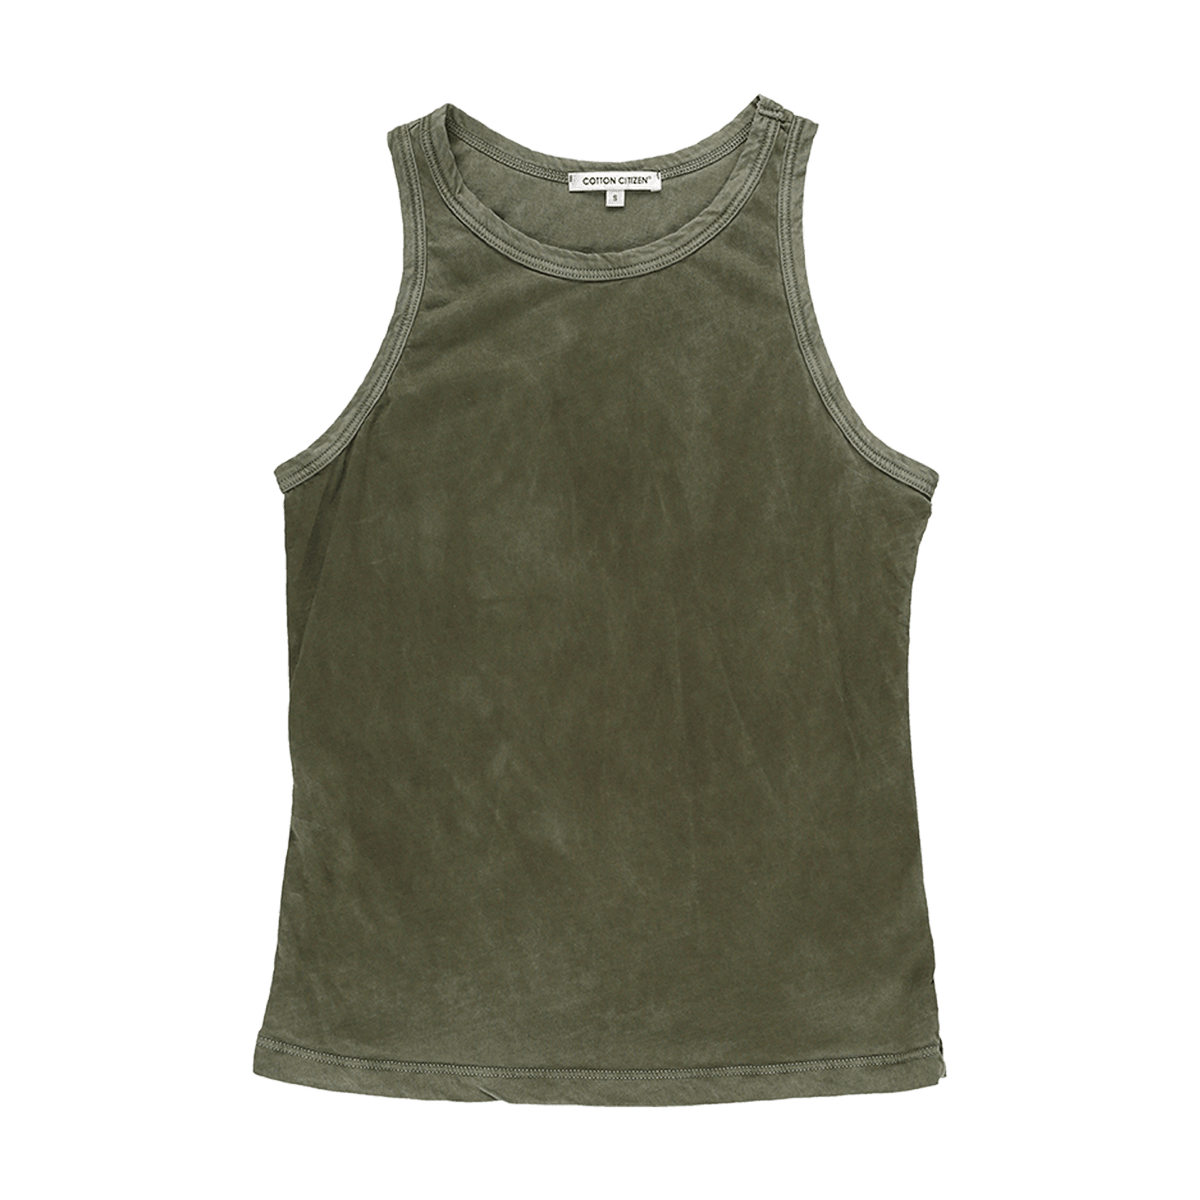 Cotton Citizen Women's Standard Tank Top  - XHIBITION